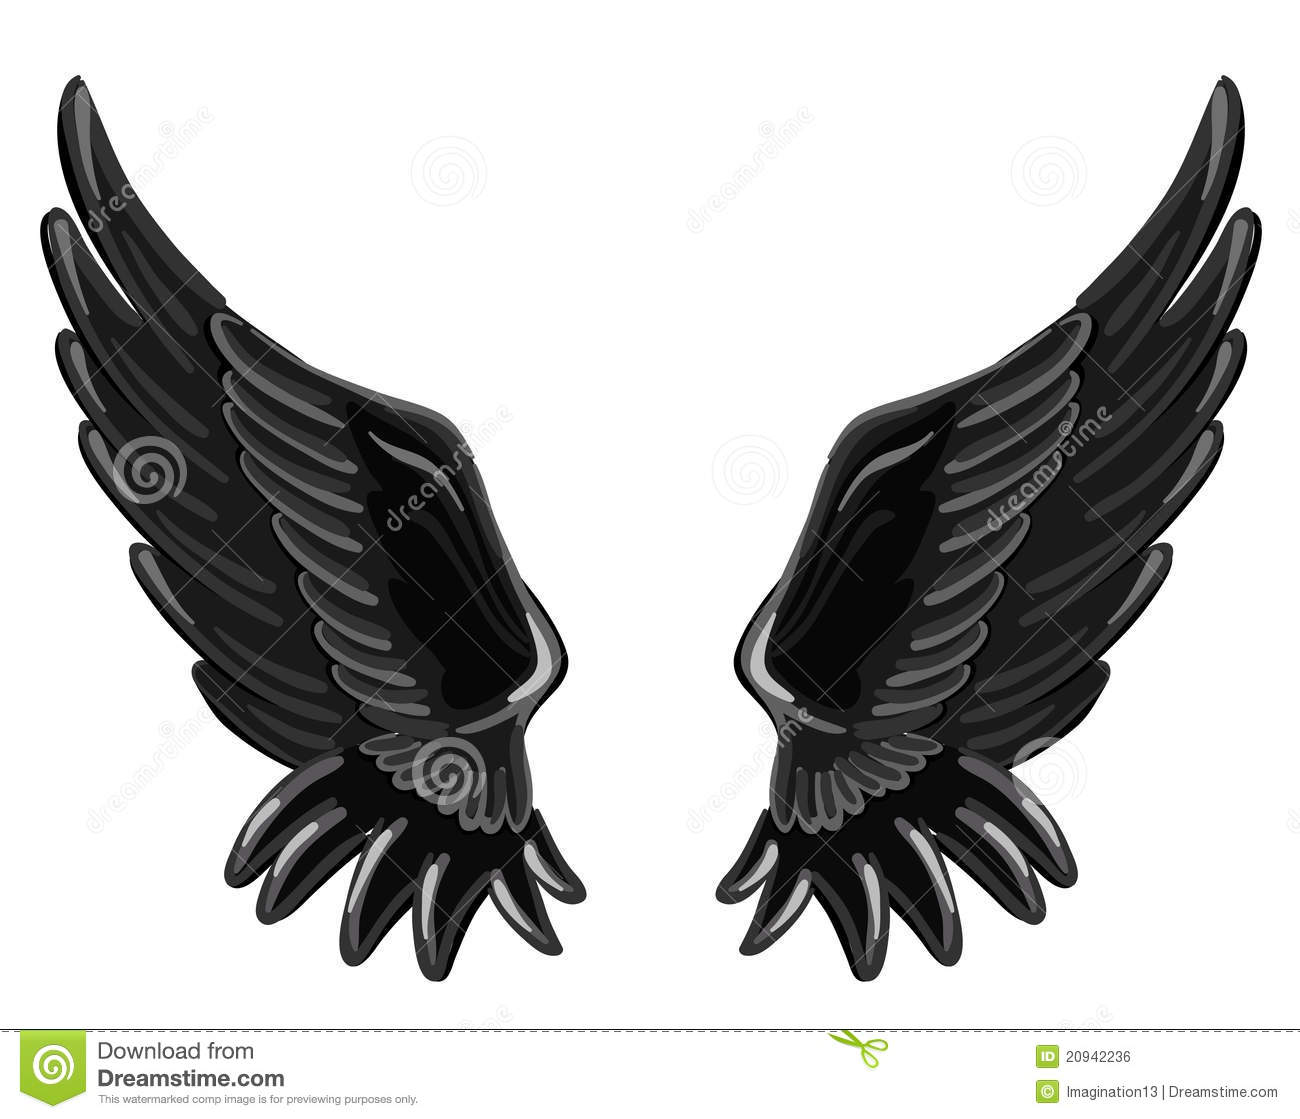 The Wings Of A Fallen Angel Royalty Free Stock Image - Image: 20942236